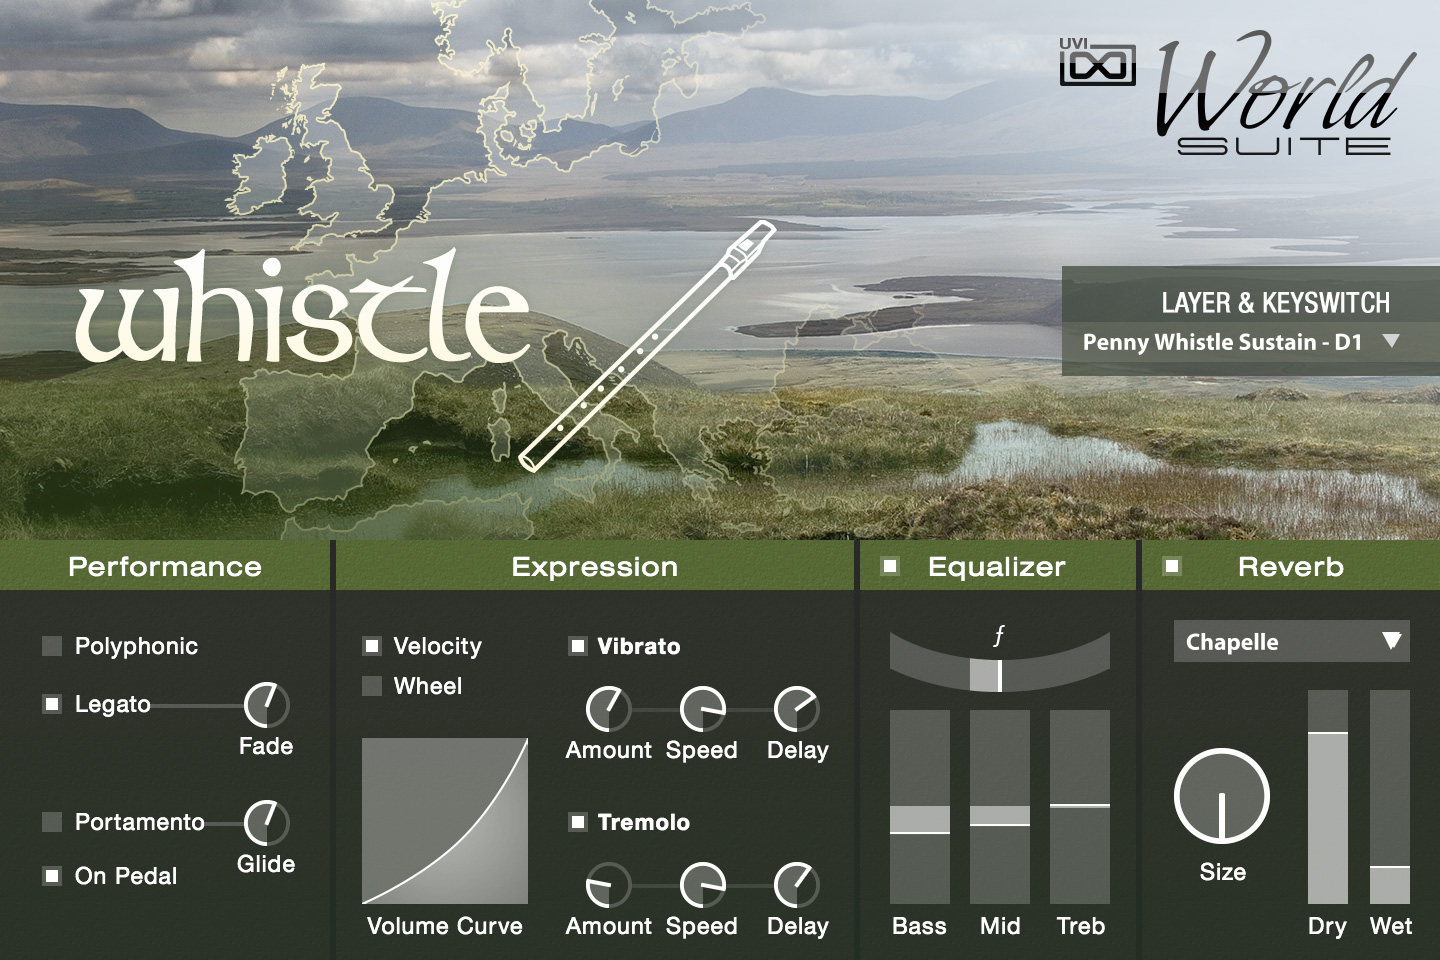 UVI World Suite | Whistle UI